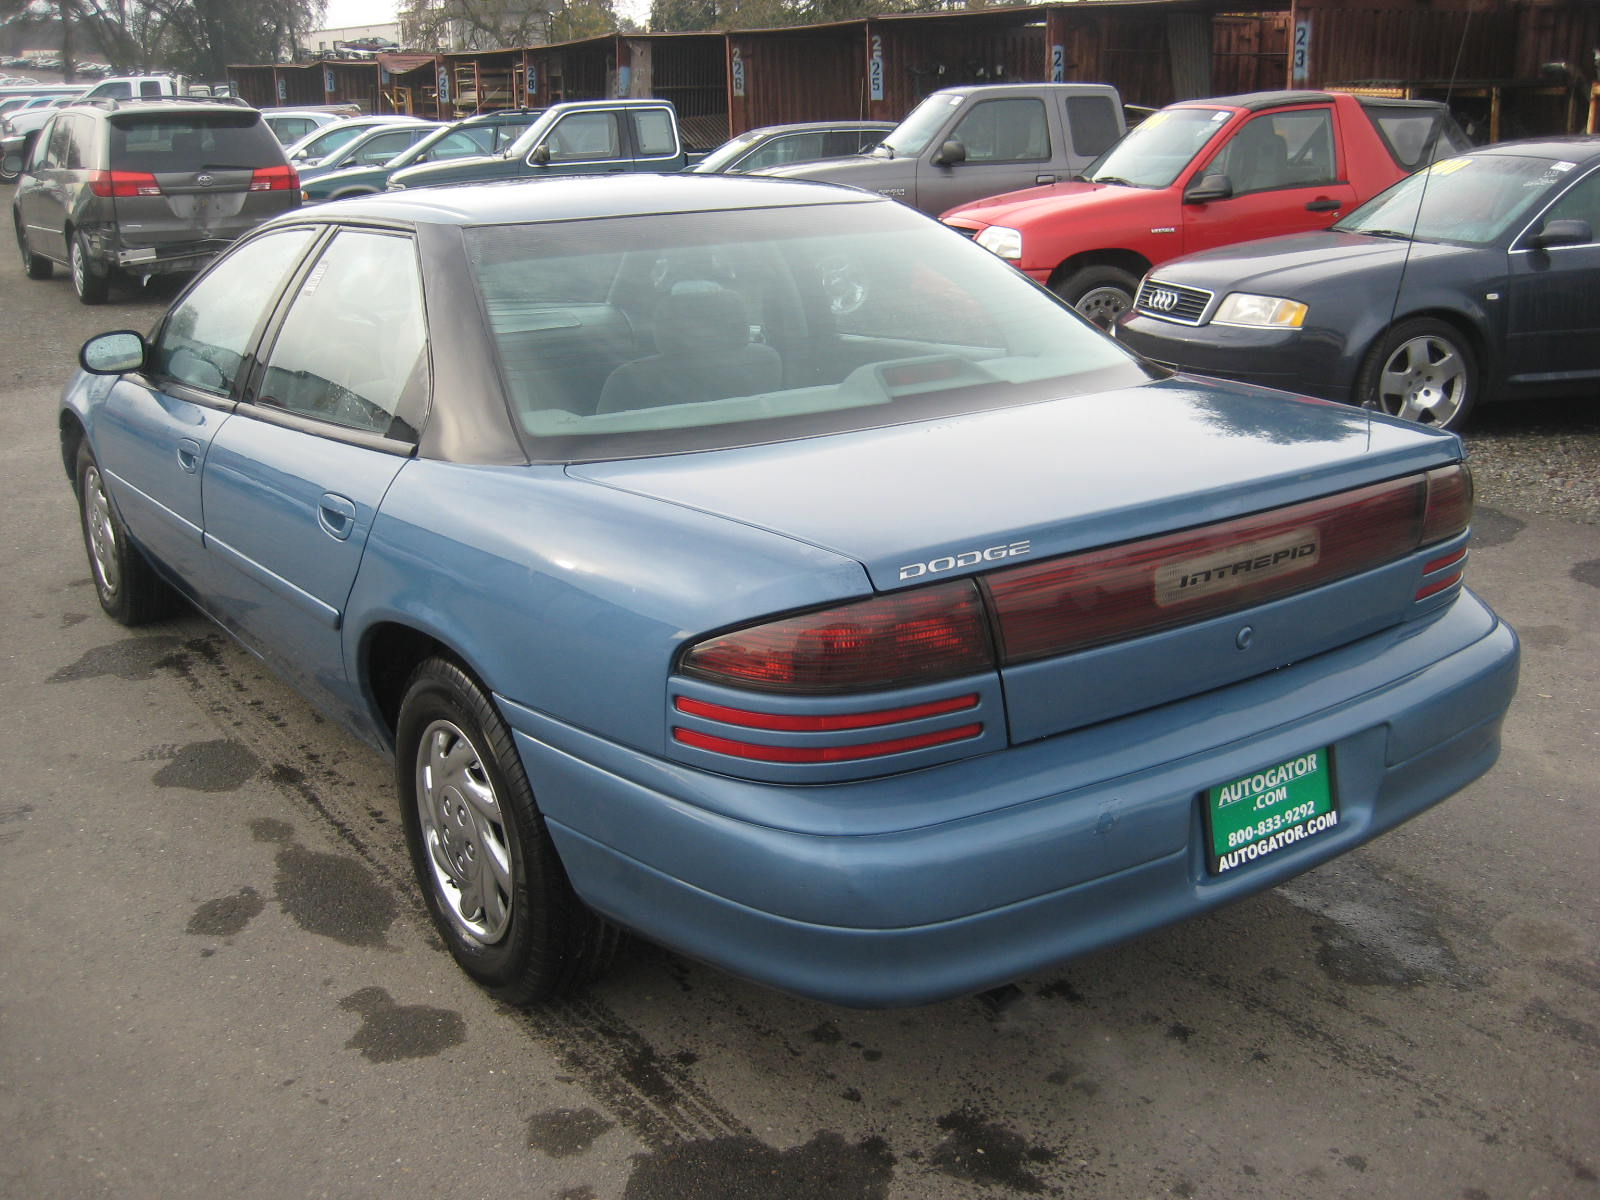 1995 Dodge Intrepid #6